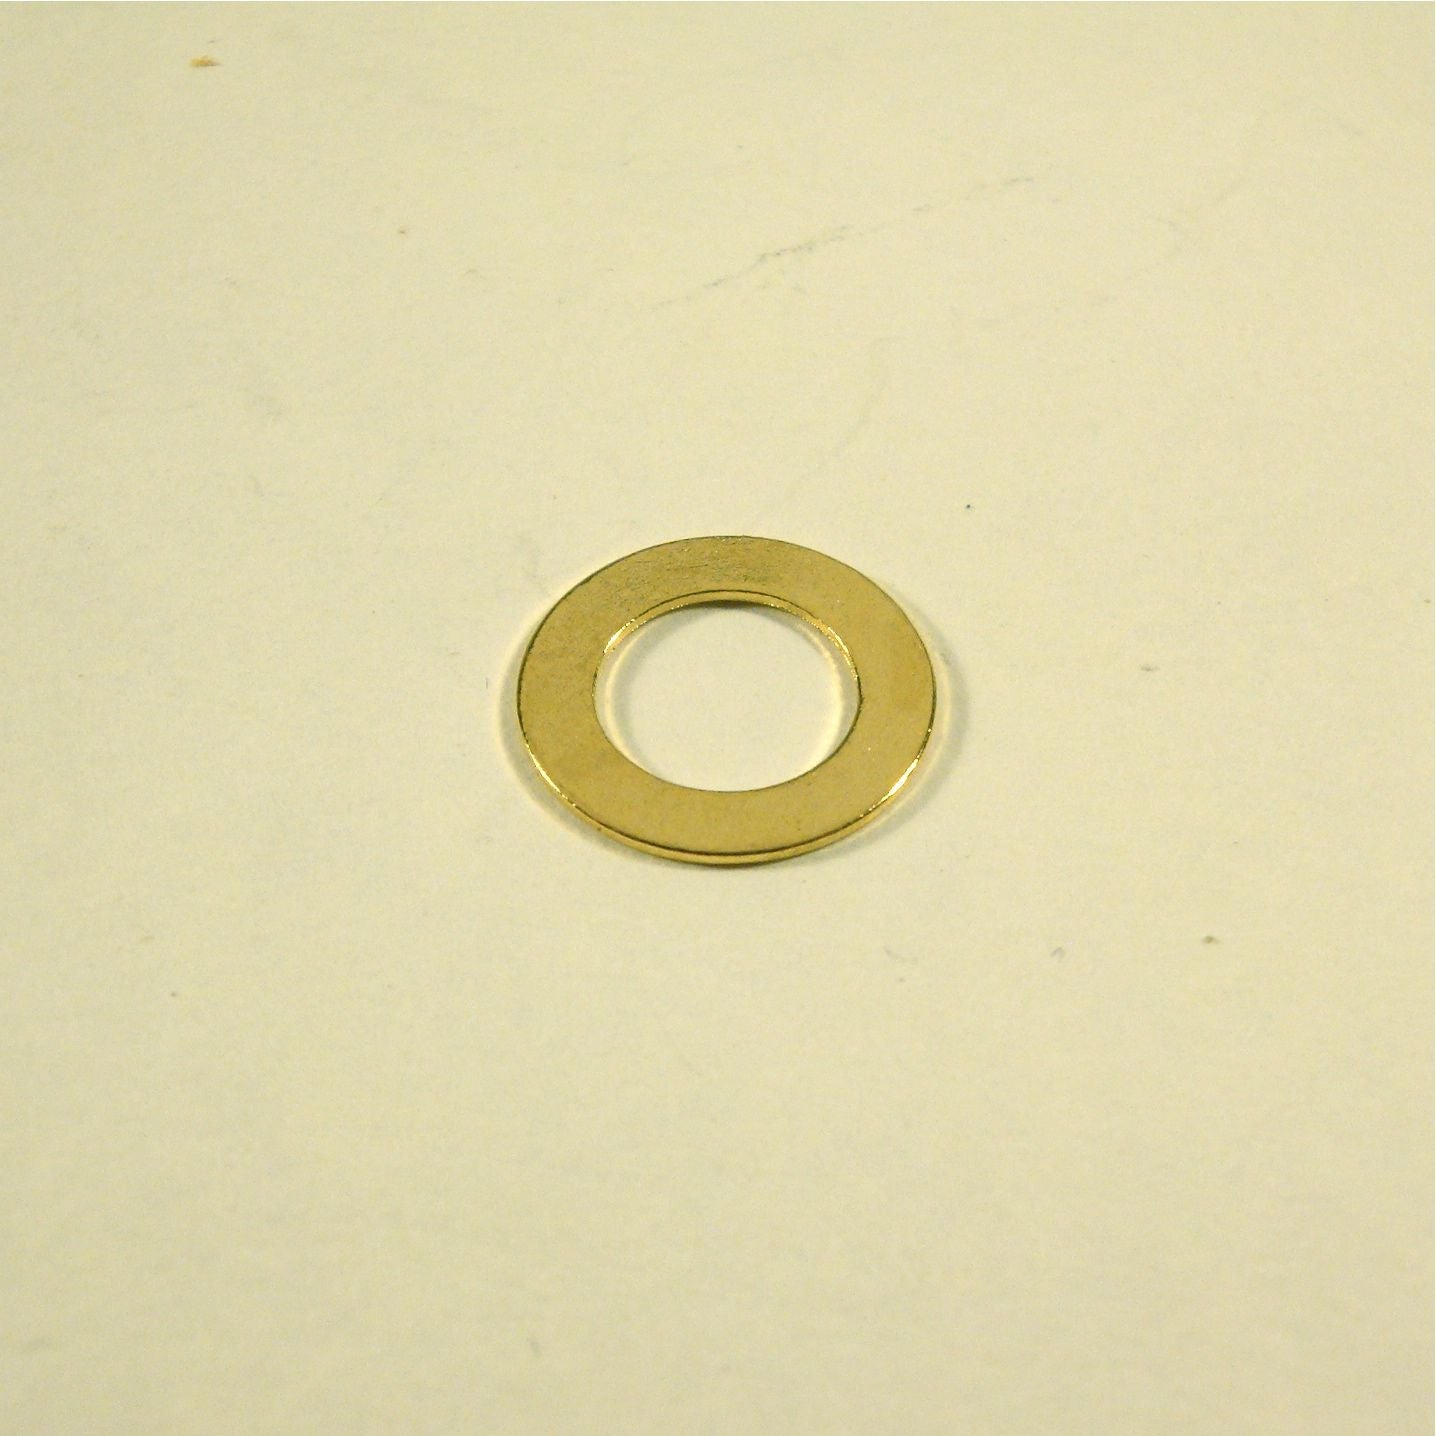 Washer for Switchcraft output jack and CTS pots, gold